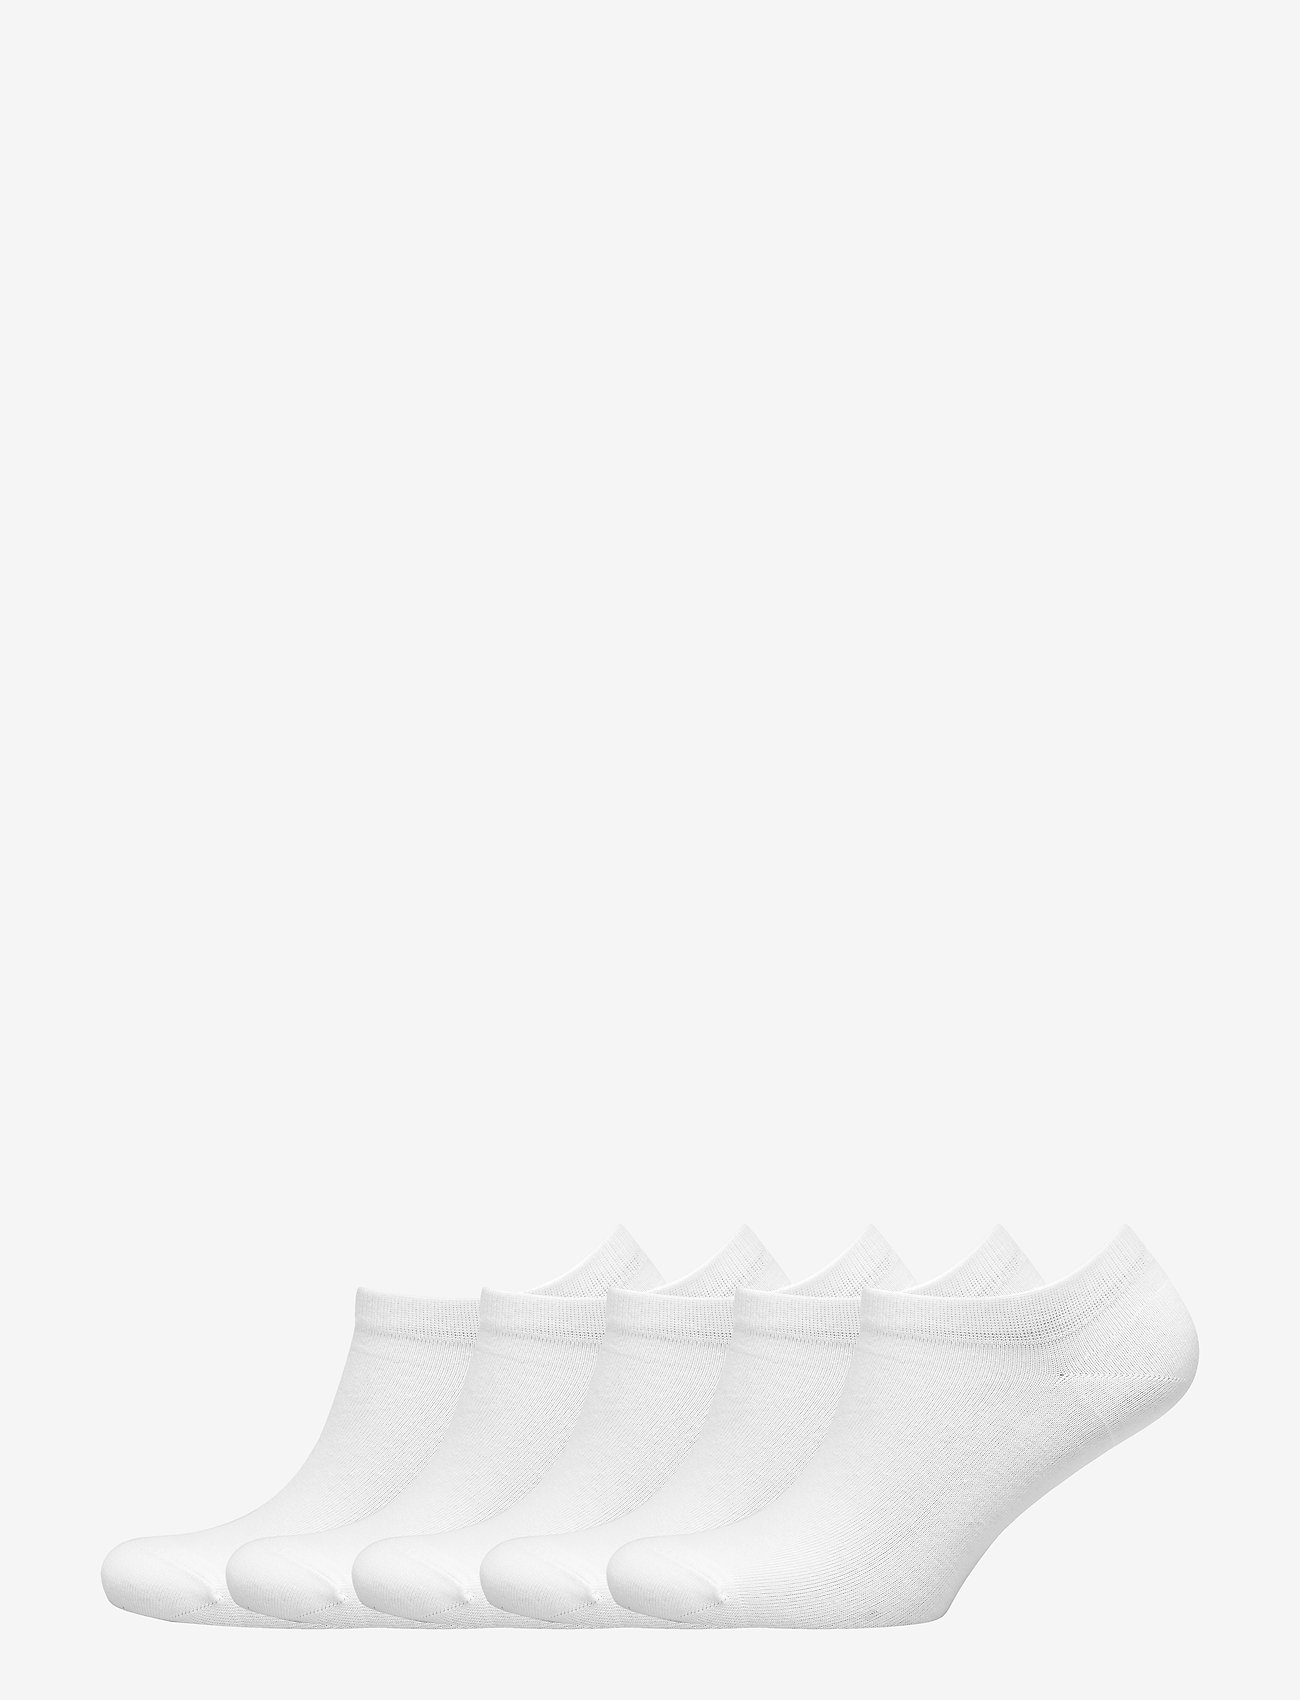 Vogue - Ladies steps, Cotton Basic Sneaker 5-pack - ankle socks - white - 0